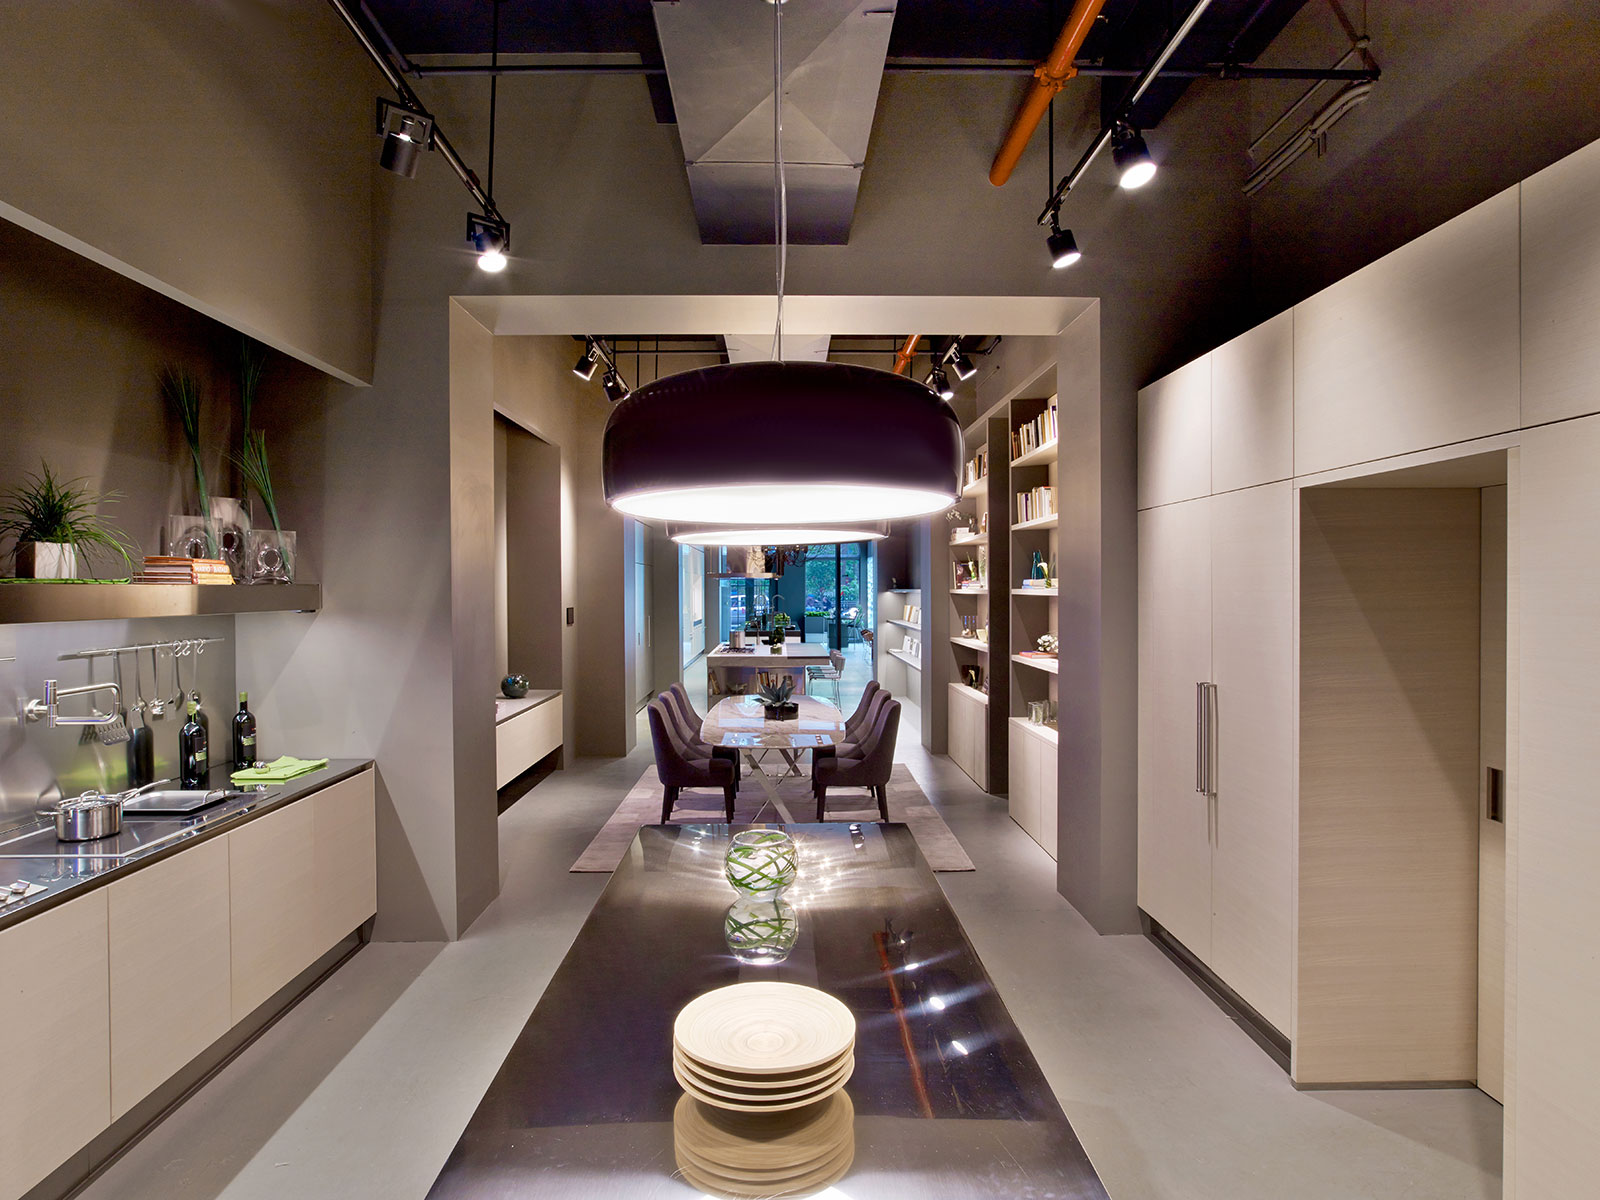 Arclinea-NYC-48.jpg